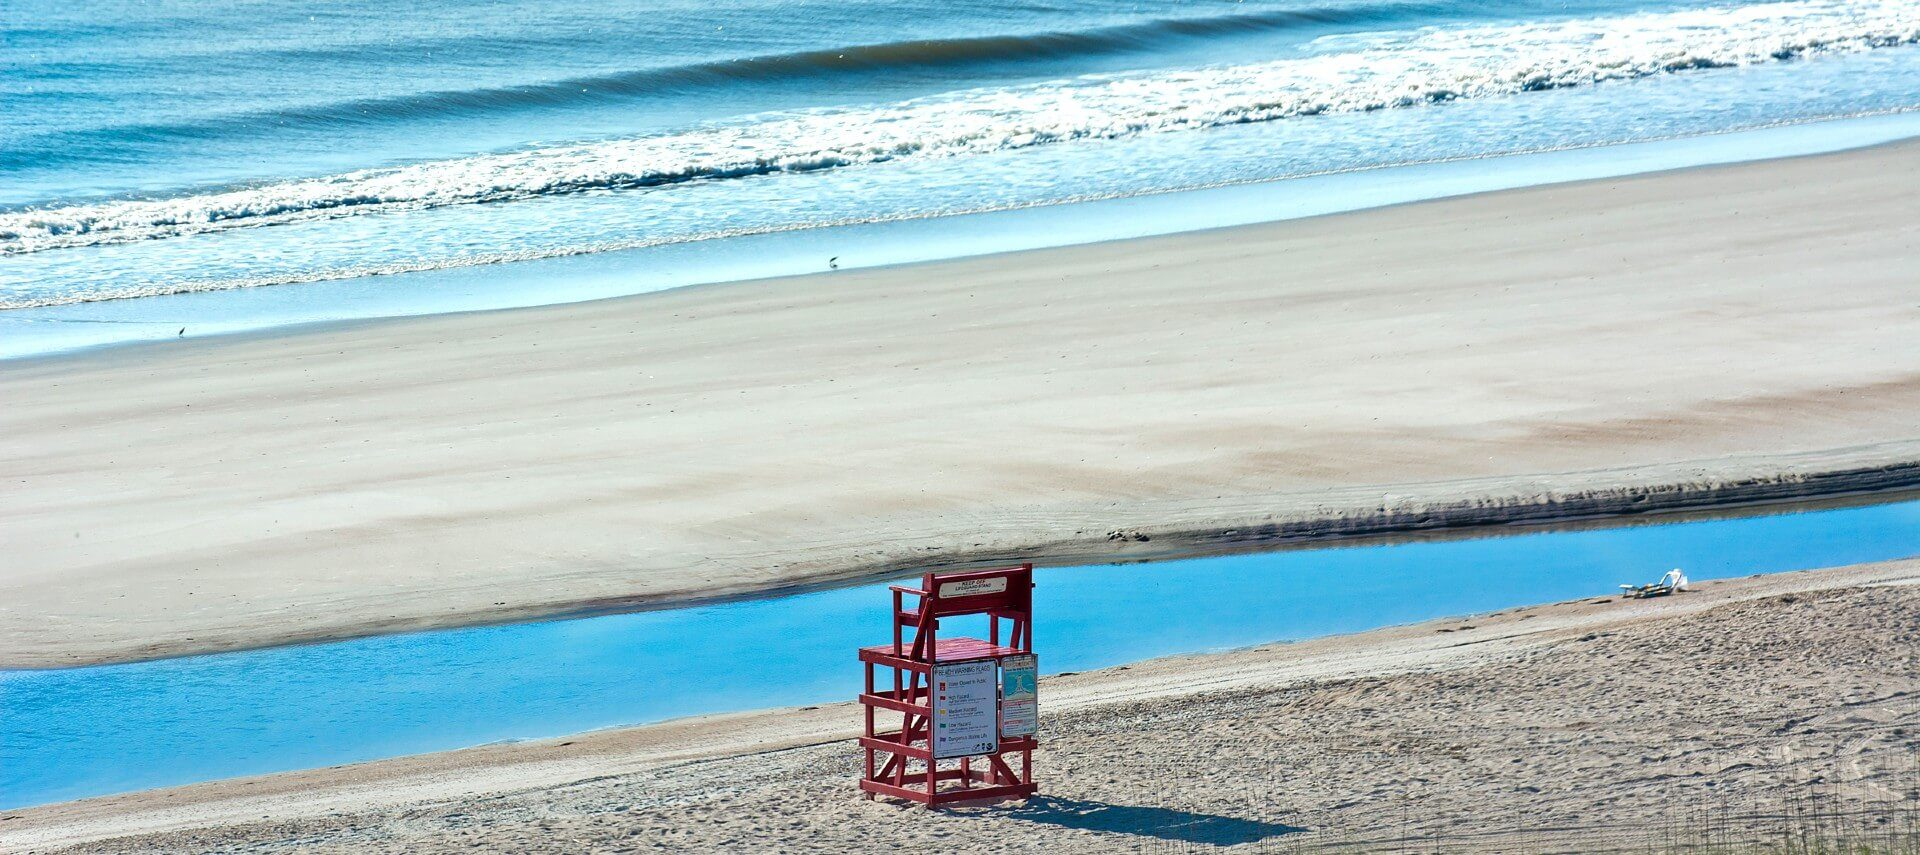 Solitary red lifeguard chair on the beach facing calm blue ocean waters